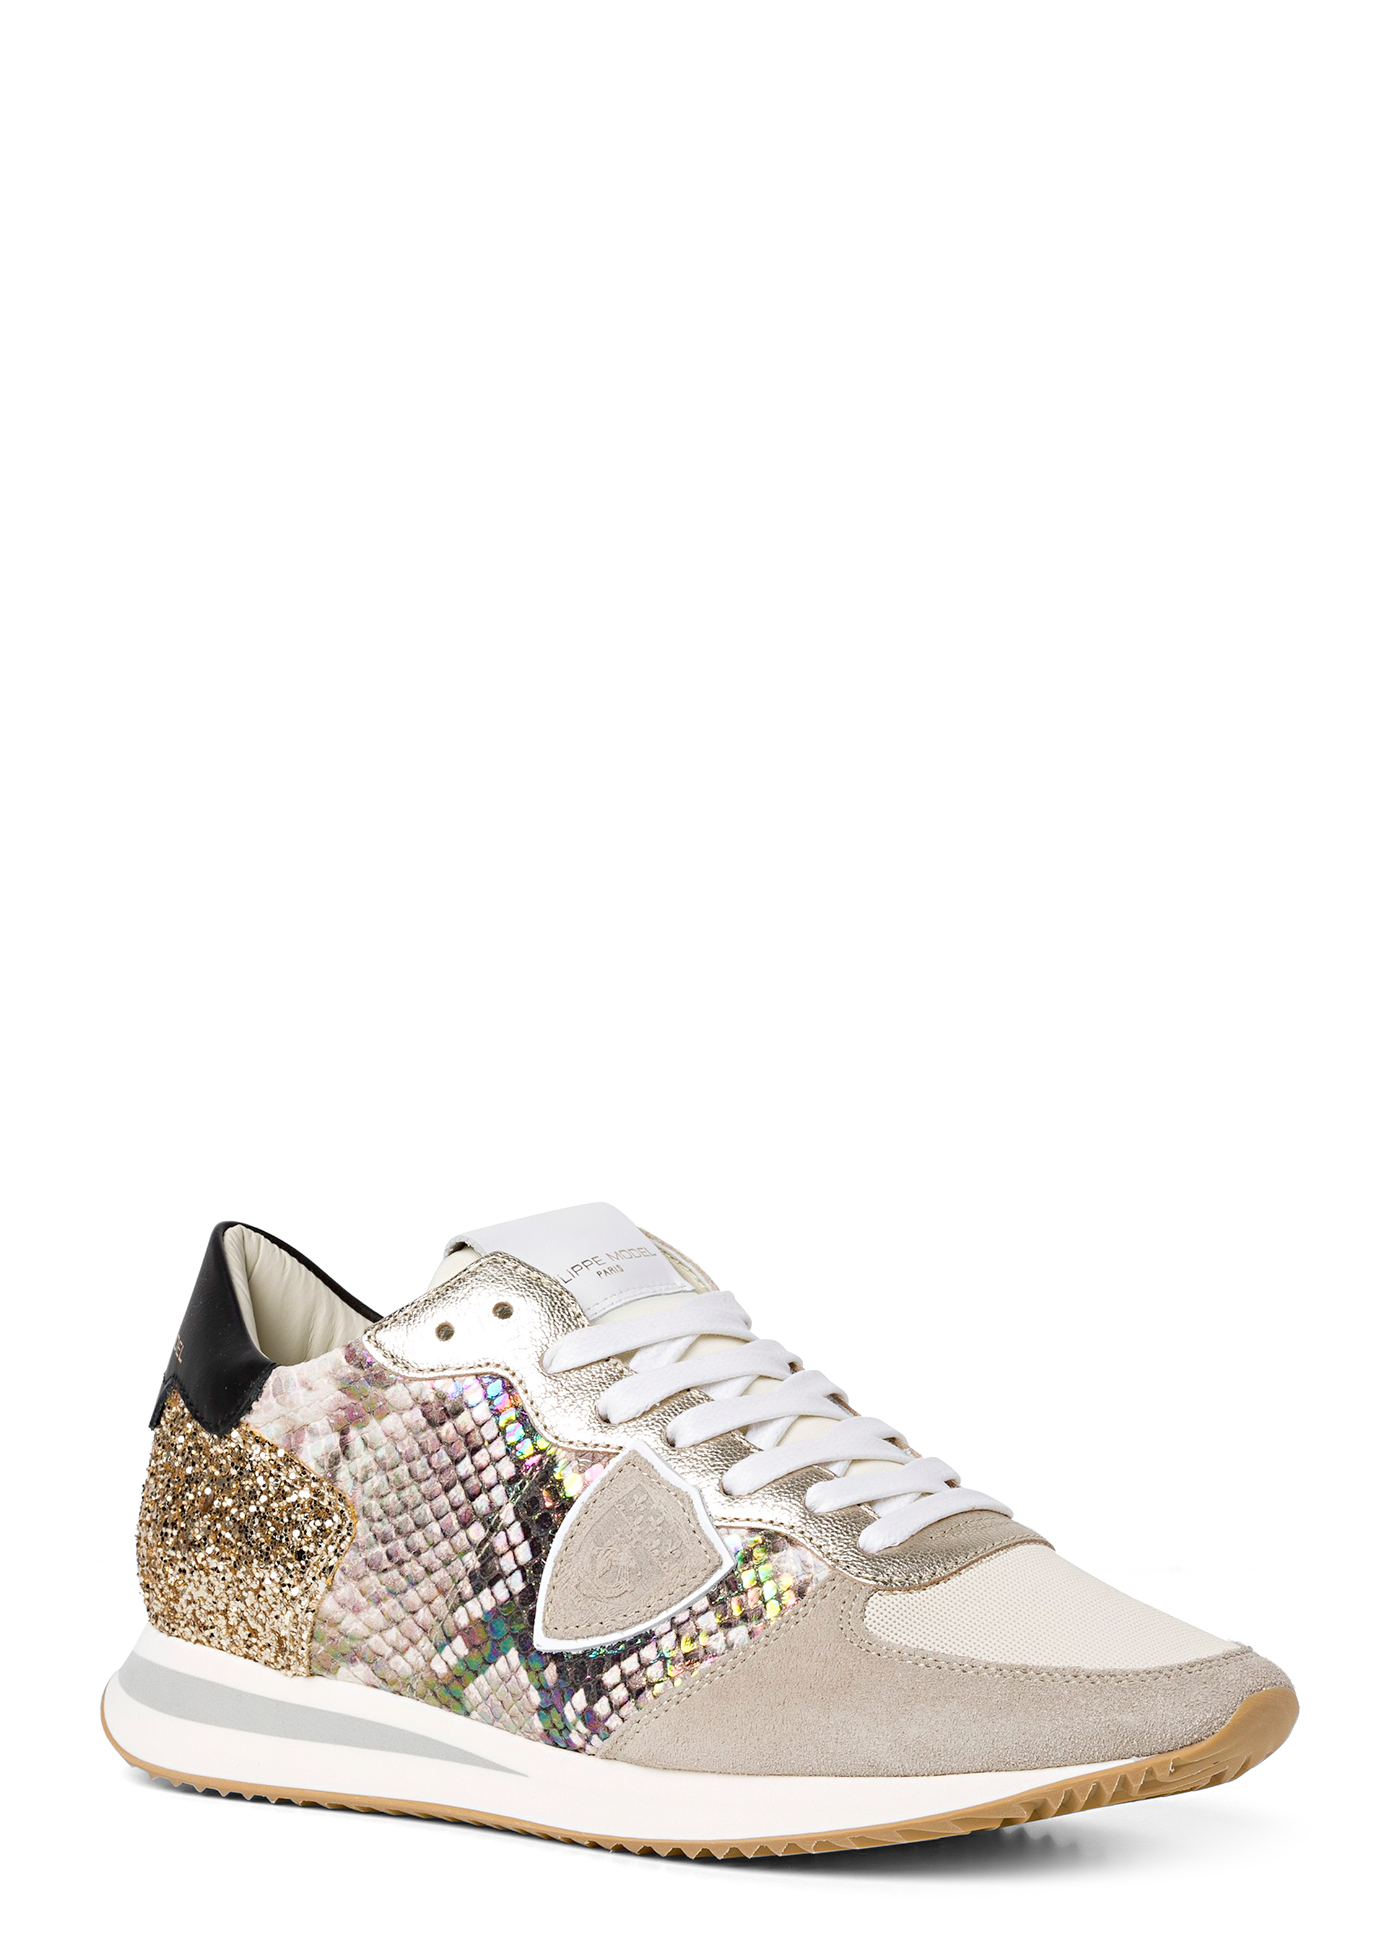 TRPX LOW WOMAN Snake Glitter image number 1